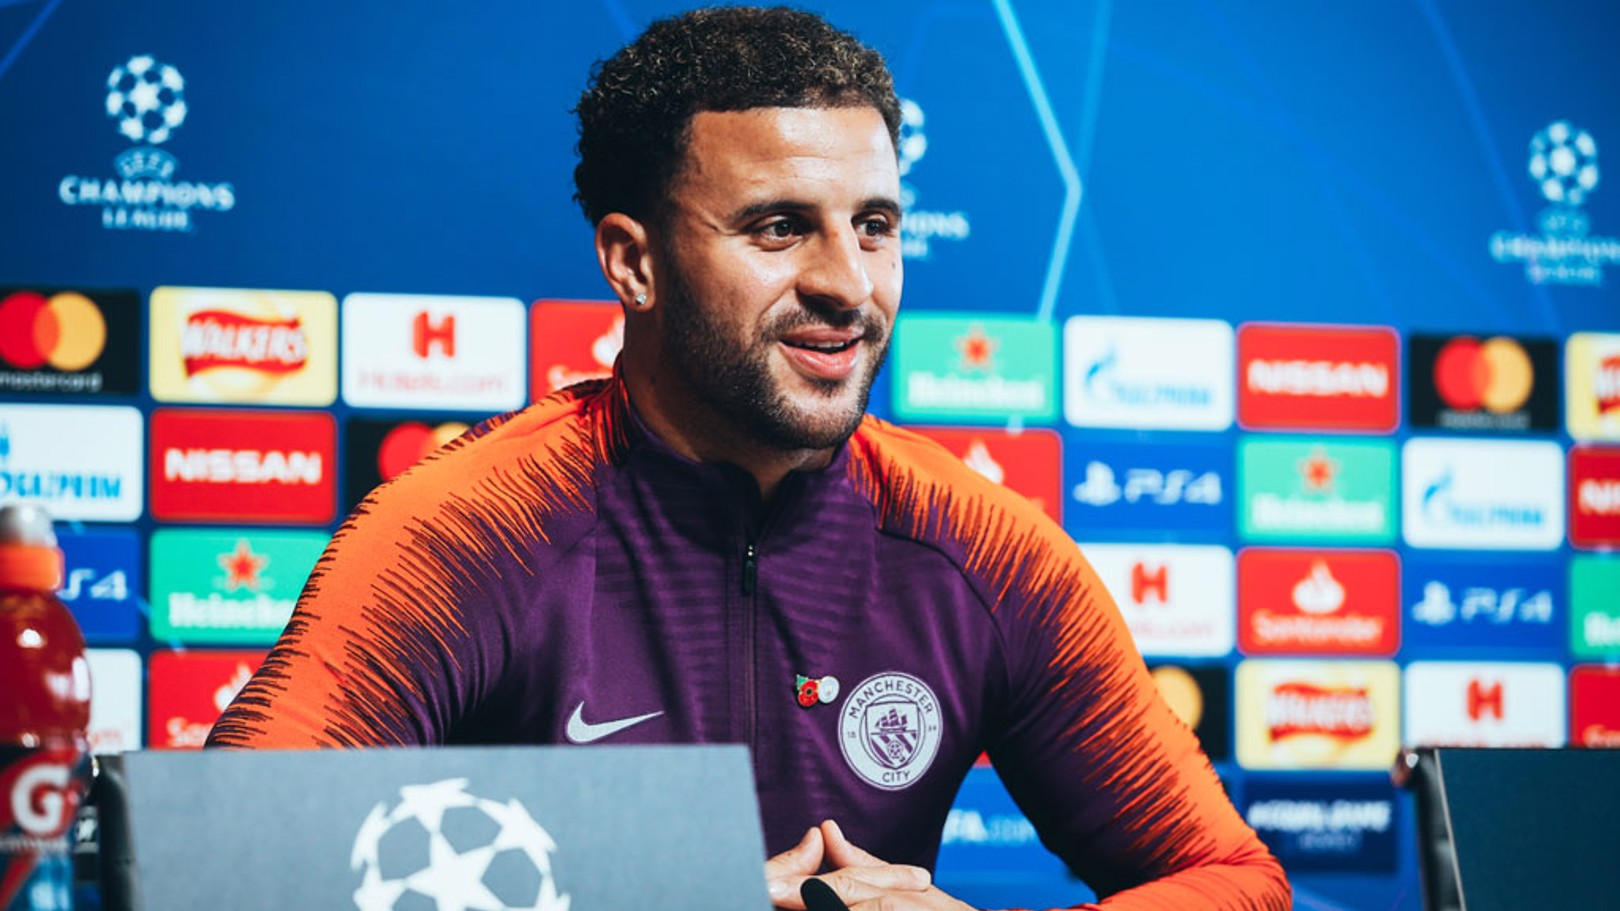 PRESS CONFERENCE: Kyle Walker addresses the media ahead of the game